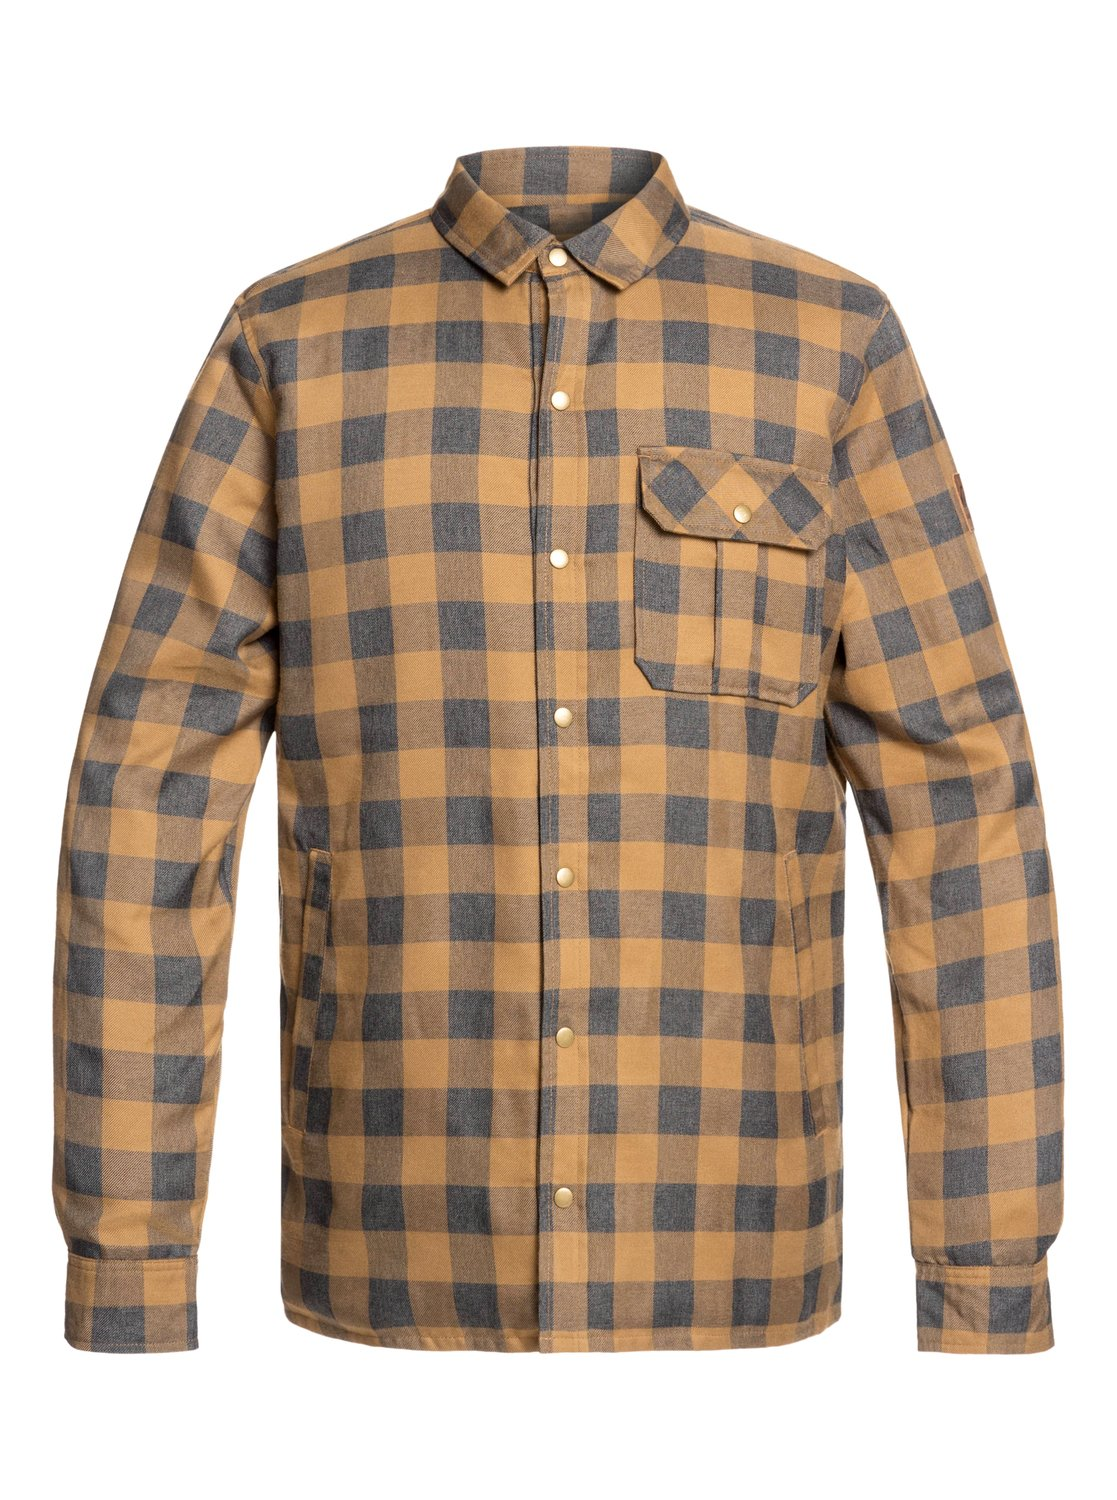 Quiksilver Wildcard Flannel Jacket - 88 Gear